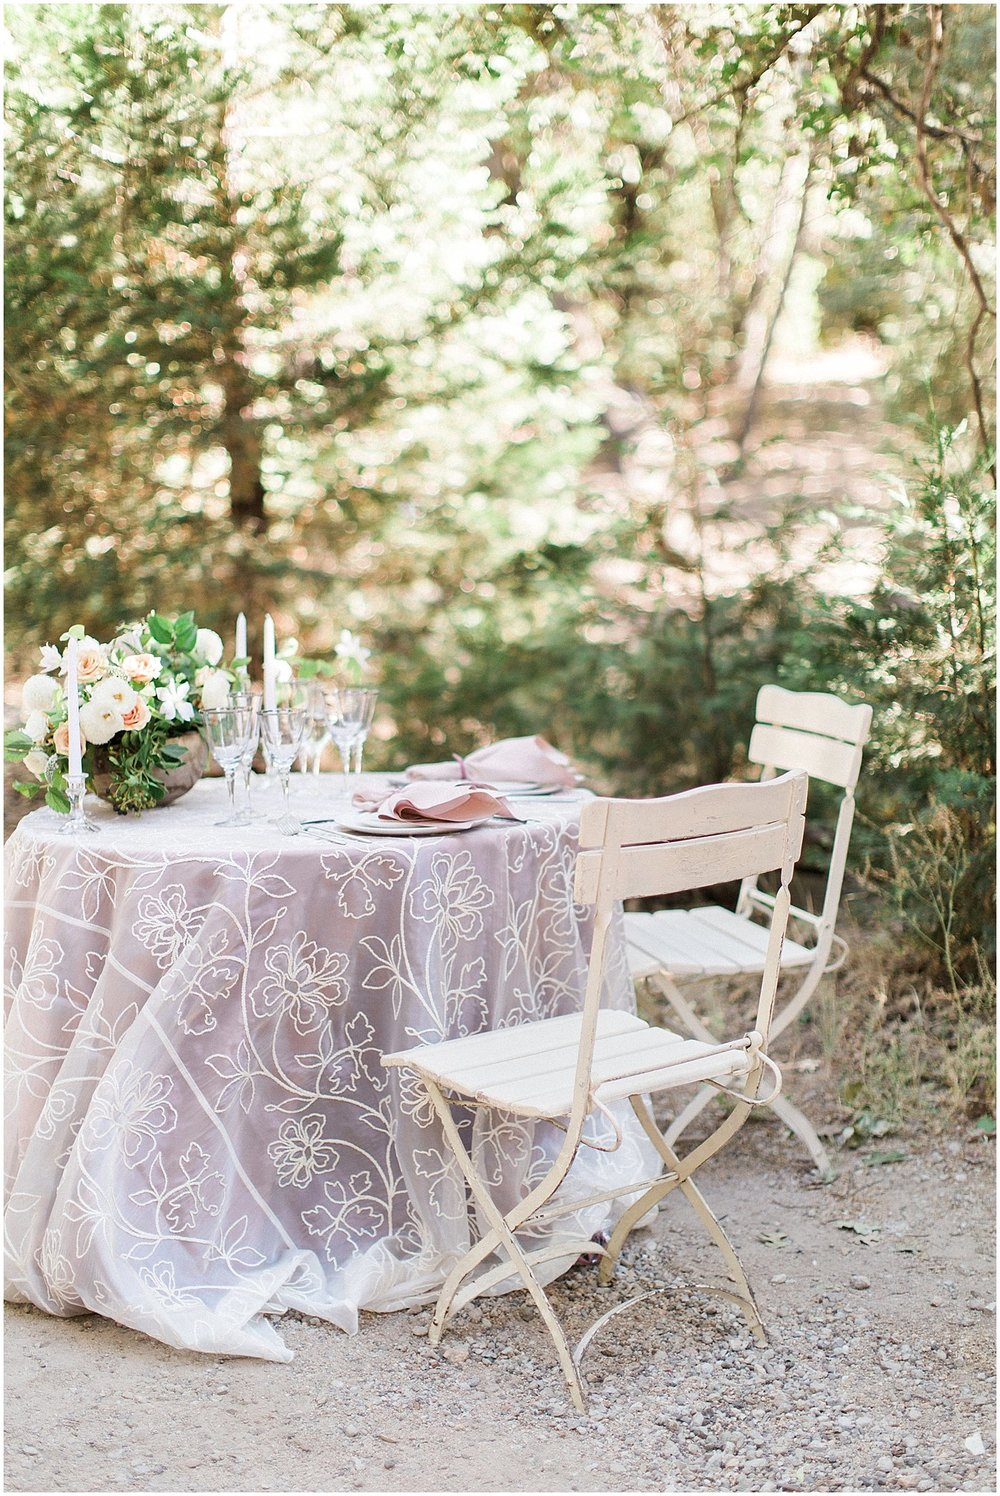 Romantic Sweetheart Table at Arrowhead Pine Rose featured on Style Me Pretty | Phoenix Wedding Planner | Megan Dileen Events